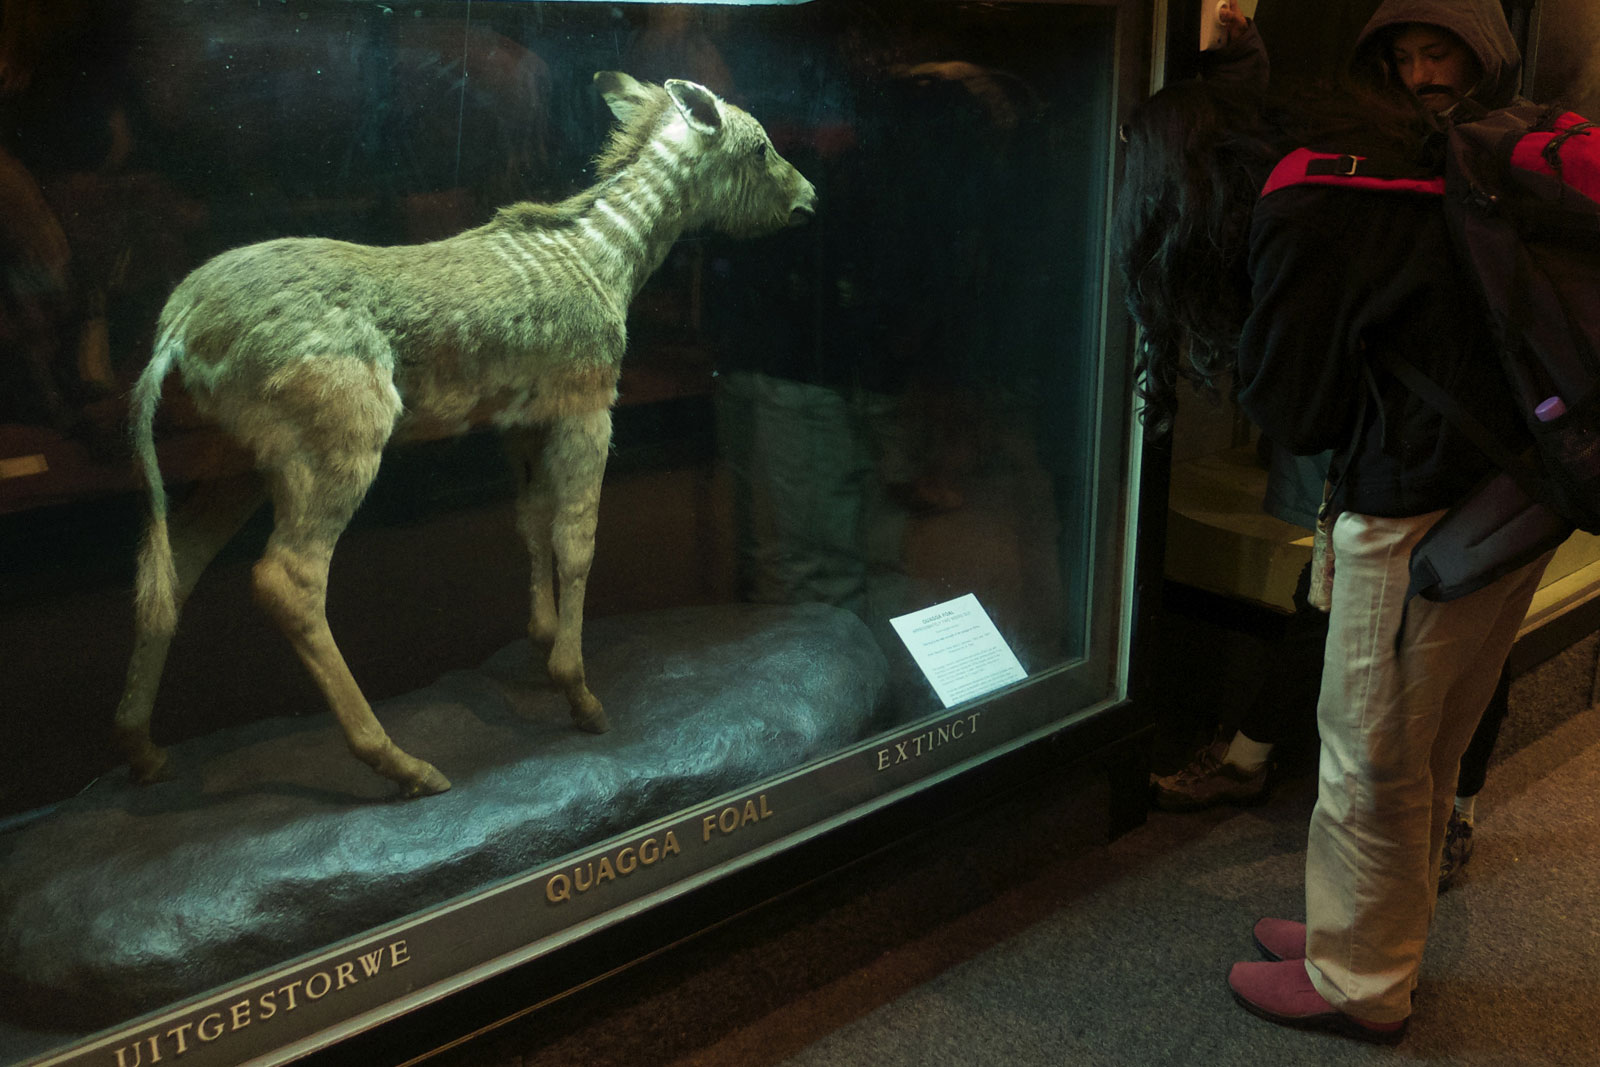 This Quagga foal was the first extinct animal to have its DNA studied ©Alison Westwood